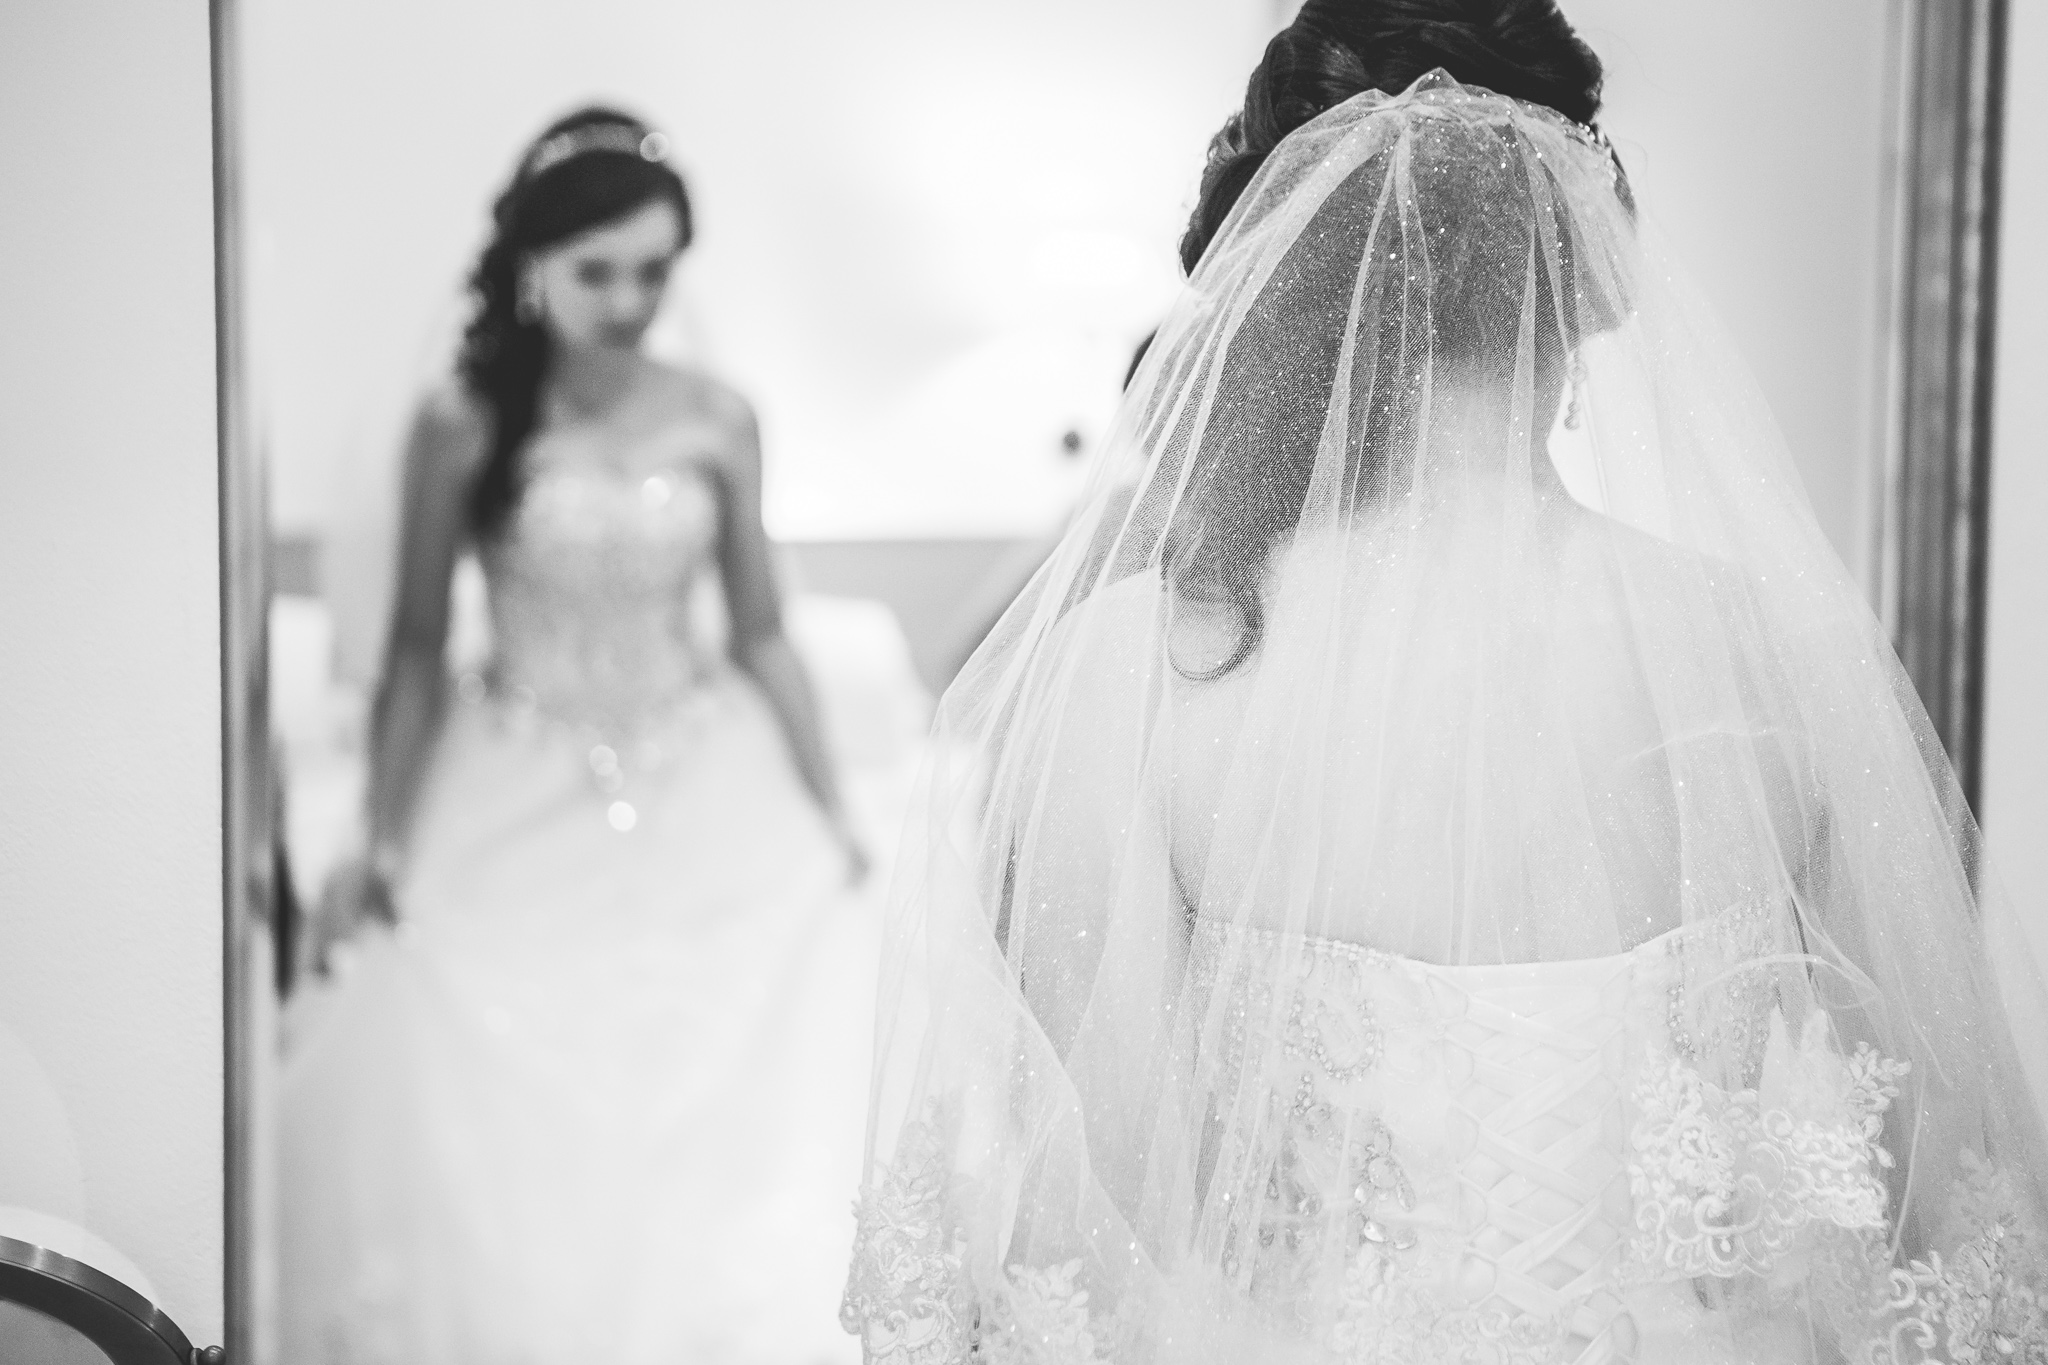 Yunfeng & Natalie Wedding Day Selects (Resized for sharing) -019.jpg